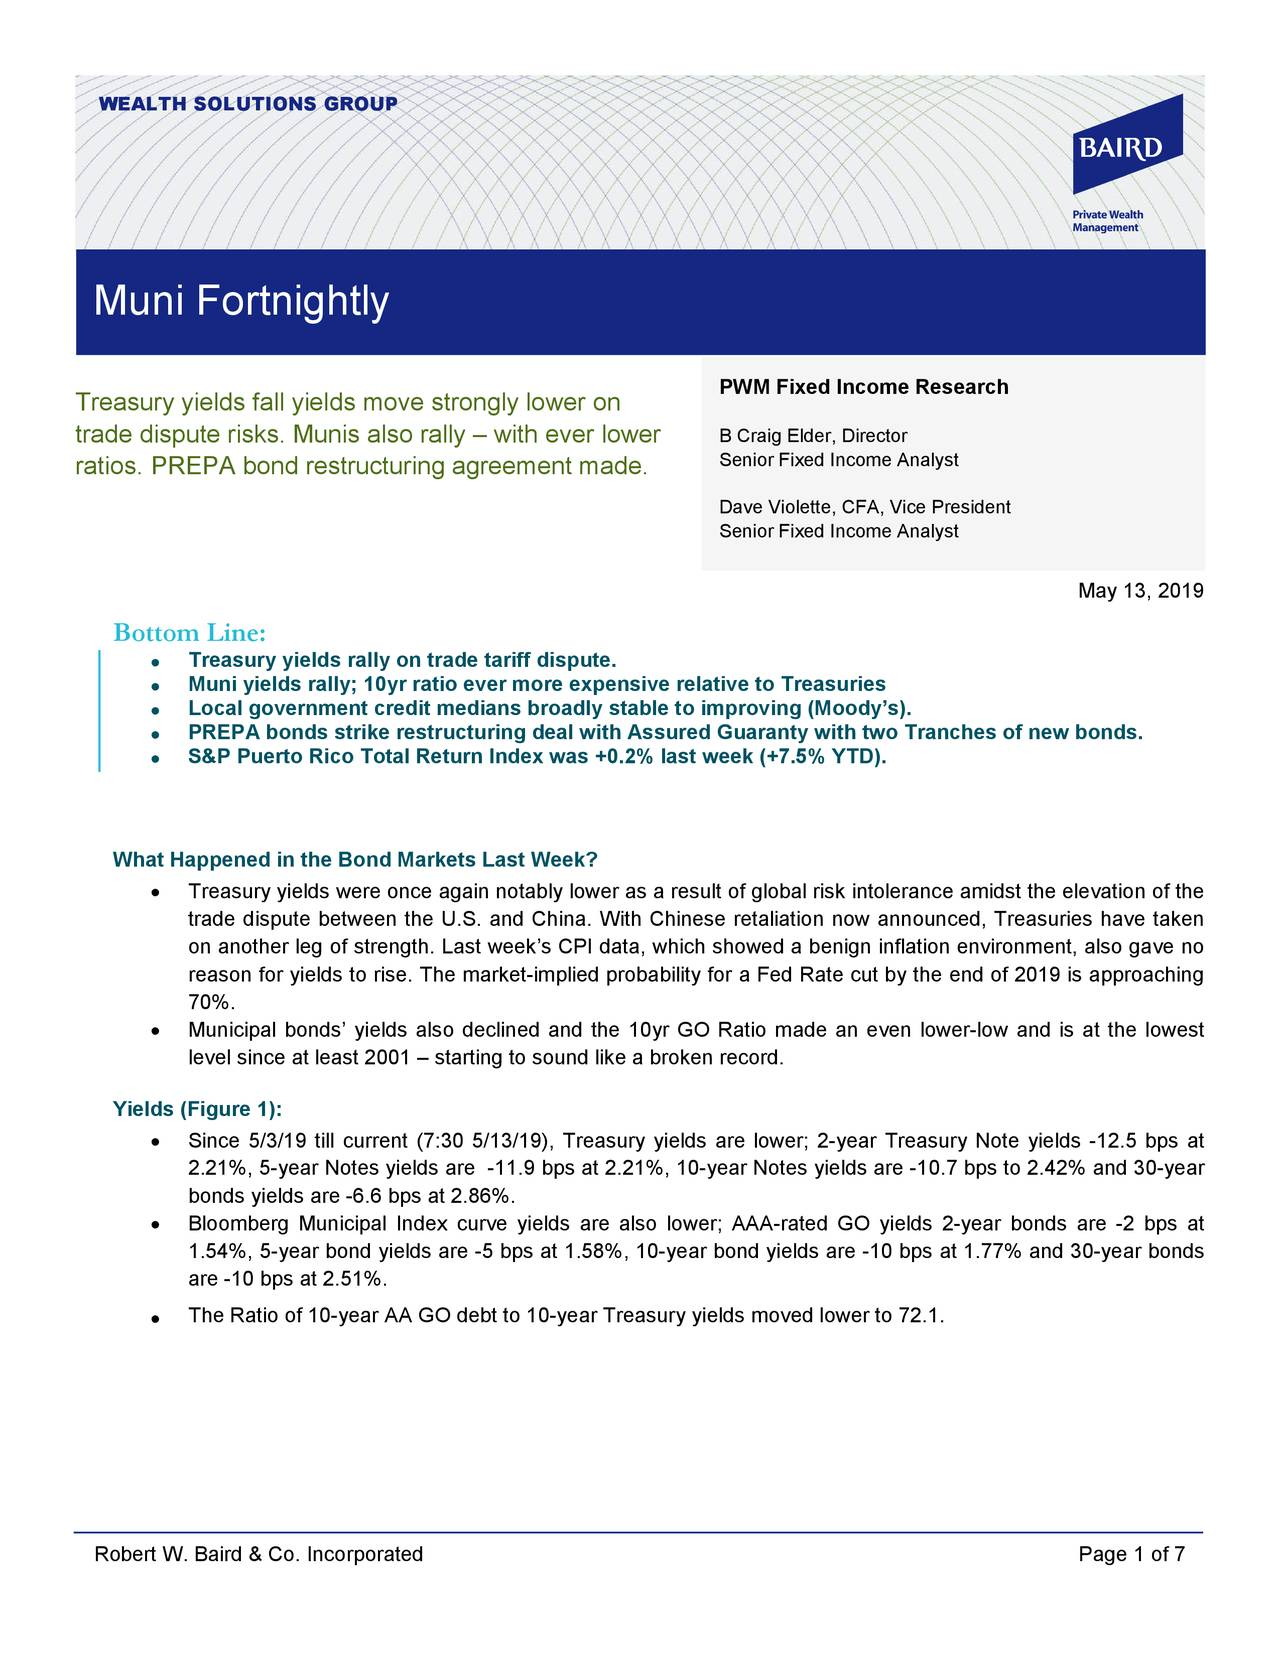 Muni Fortnightly PWM Fixed Income Research Treasury yields fall yields move strongly lower on trade dispute risks. Munis also rally – with ever lower David N. Violette, CFA, Vice President Senior Fixed Income Analyst ratios. PREPA bond restructuring agreement made. Senior Fixed Income Analyst Dave Violette, CFA, Vice President Senior Fixed Income Analyst May 13, 2019 Bottom Line: Treasury yields rally on trade tariff dispute. • • Muni yields rally; 10yr ratio ever more expensive relative to Treasuries • Local government credit medians broadly stable to improving (Moody's). • PREPA bonds strike restructuring deal with Assured Guaranty with two Tranches of new bonds. • S&P Puerto Rico Total Return Index was +0.2% last week (+7.5% YTD). What Happened in the Bond Markets Last Week? • Treasury yields were once again notably lower as a result of global risk intolerance amidst the elevation of the trade dispute between the U.S. and China. With Chinese retaliation now announced, Treasuries have taken on another leg of strength. Last week's CPI data, which showed a benign inflation environment, also gave no reason for yields to rise. The market-implied probability for a Fed Rate cut by the end of 2019 is approaching 70%. • Municipal bonds' yields also declined and the 10yr GO Ratio made an even lower -low and is at the lowest level since at least 2001 – starting to sound like a broken record. Yields (Figure 1): • Since 5/3/19 till current (7:30 5/13/19), Treasury yields are lower;year Treasury Note yields - 12.5 bps at 2.21%, 5-year Notes yields are -11.9 bps at 2.21%, 10-year Notes yields are -10.7 bps to 2.42% and 30-year bonds yields are -6.6 bps at 2.86%. • Bloomberg Municipal Index curve yields are also lower; AAA -rated GO yields 2- year bonds are - 2 bps at 1.54%, 5-year bond yields are -5 bps at 1.58%, 10-year bond yields are -10 bps at 1.77% and 30-year bonds are -10 bps at 2.51%. • The Ratio of 10-year AA GO debt to 10-year Treasury yields moved lower to 72.1. Robe